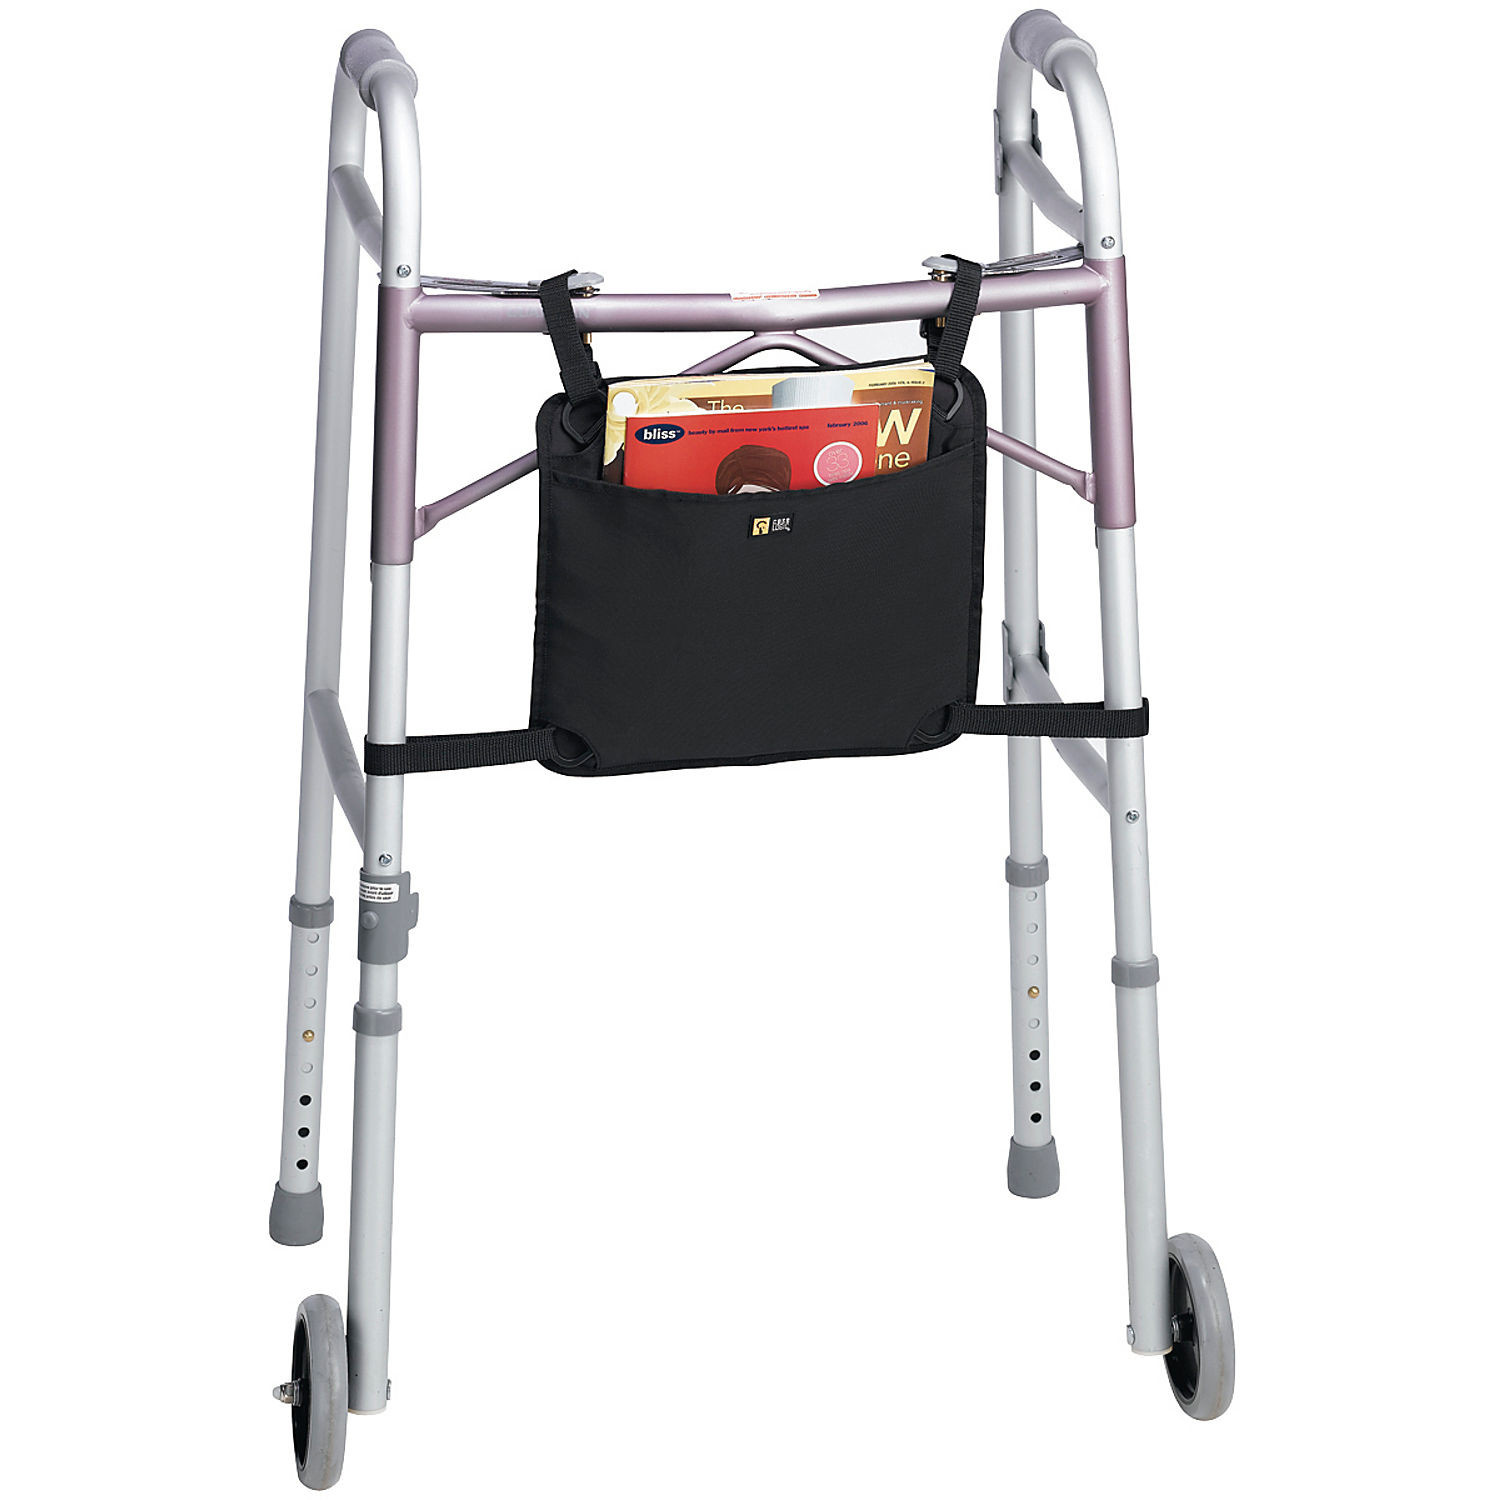 Lovely Case Logic Walker or Rolling Walker organizer Ebags Walker organizer Of Adorable 50 Images Walker organizer